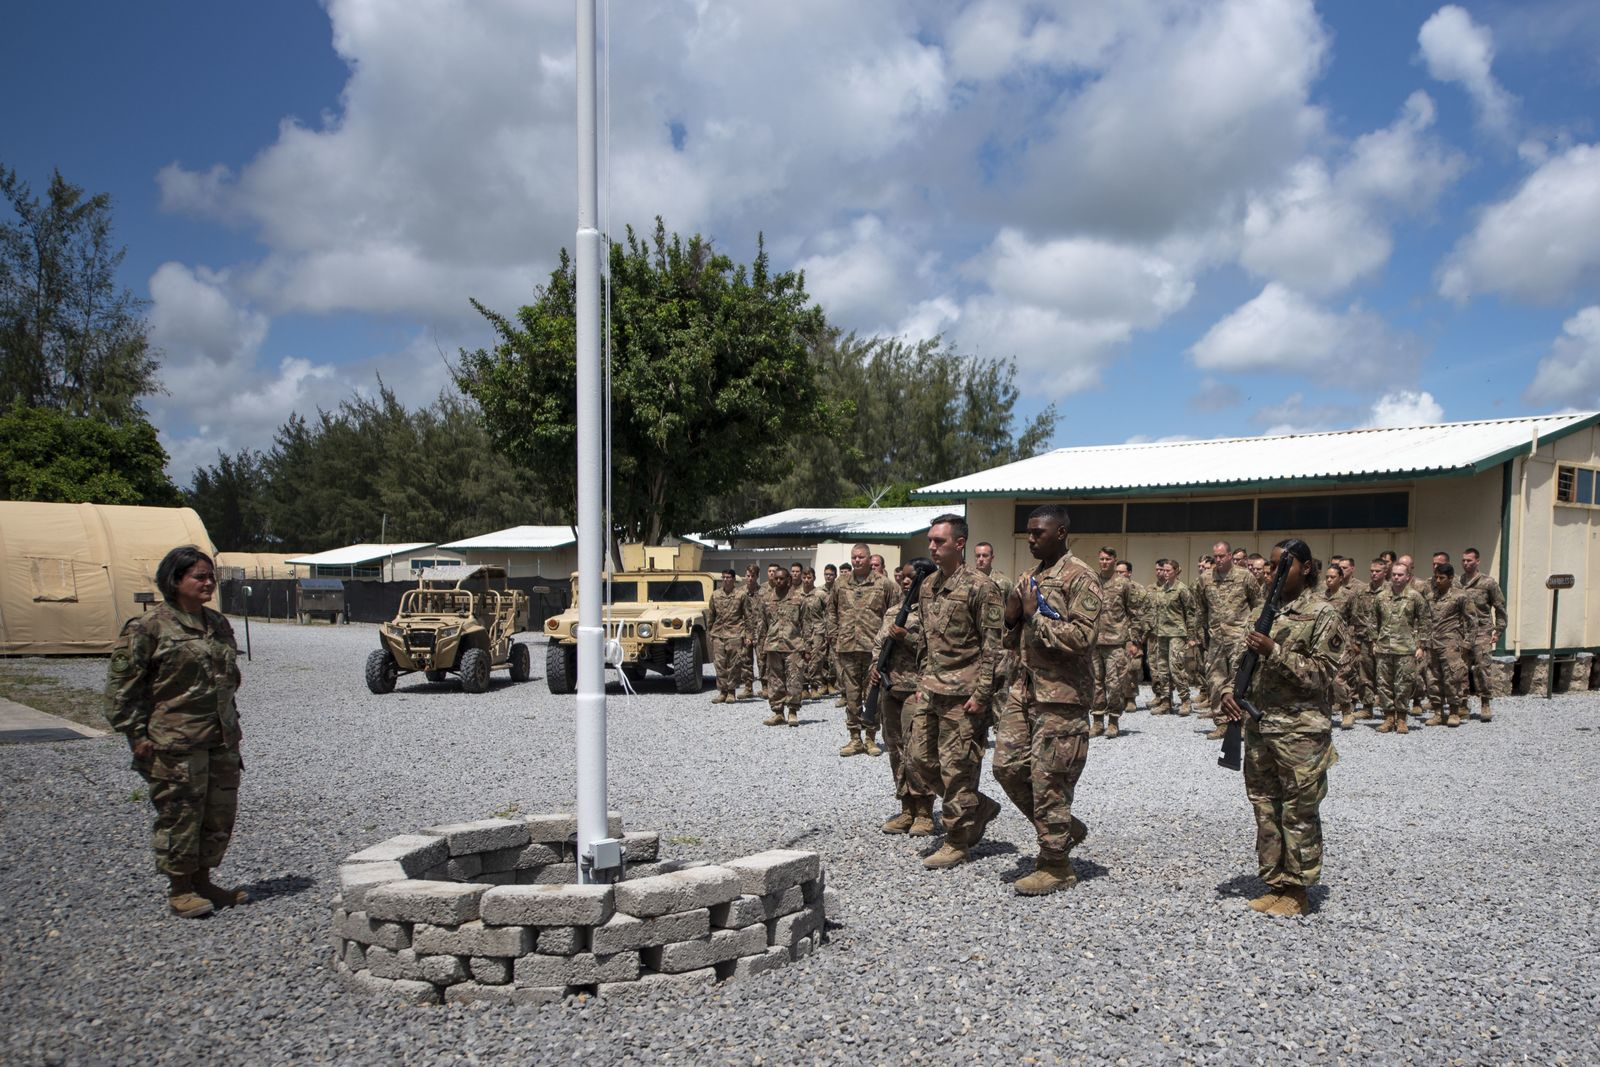 Al Shabaab militia attack US military base Camp Simba in Kenya, Lamu - 26 Aug 2019